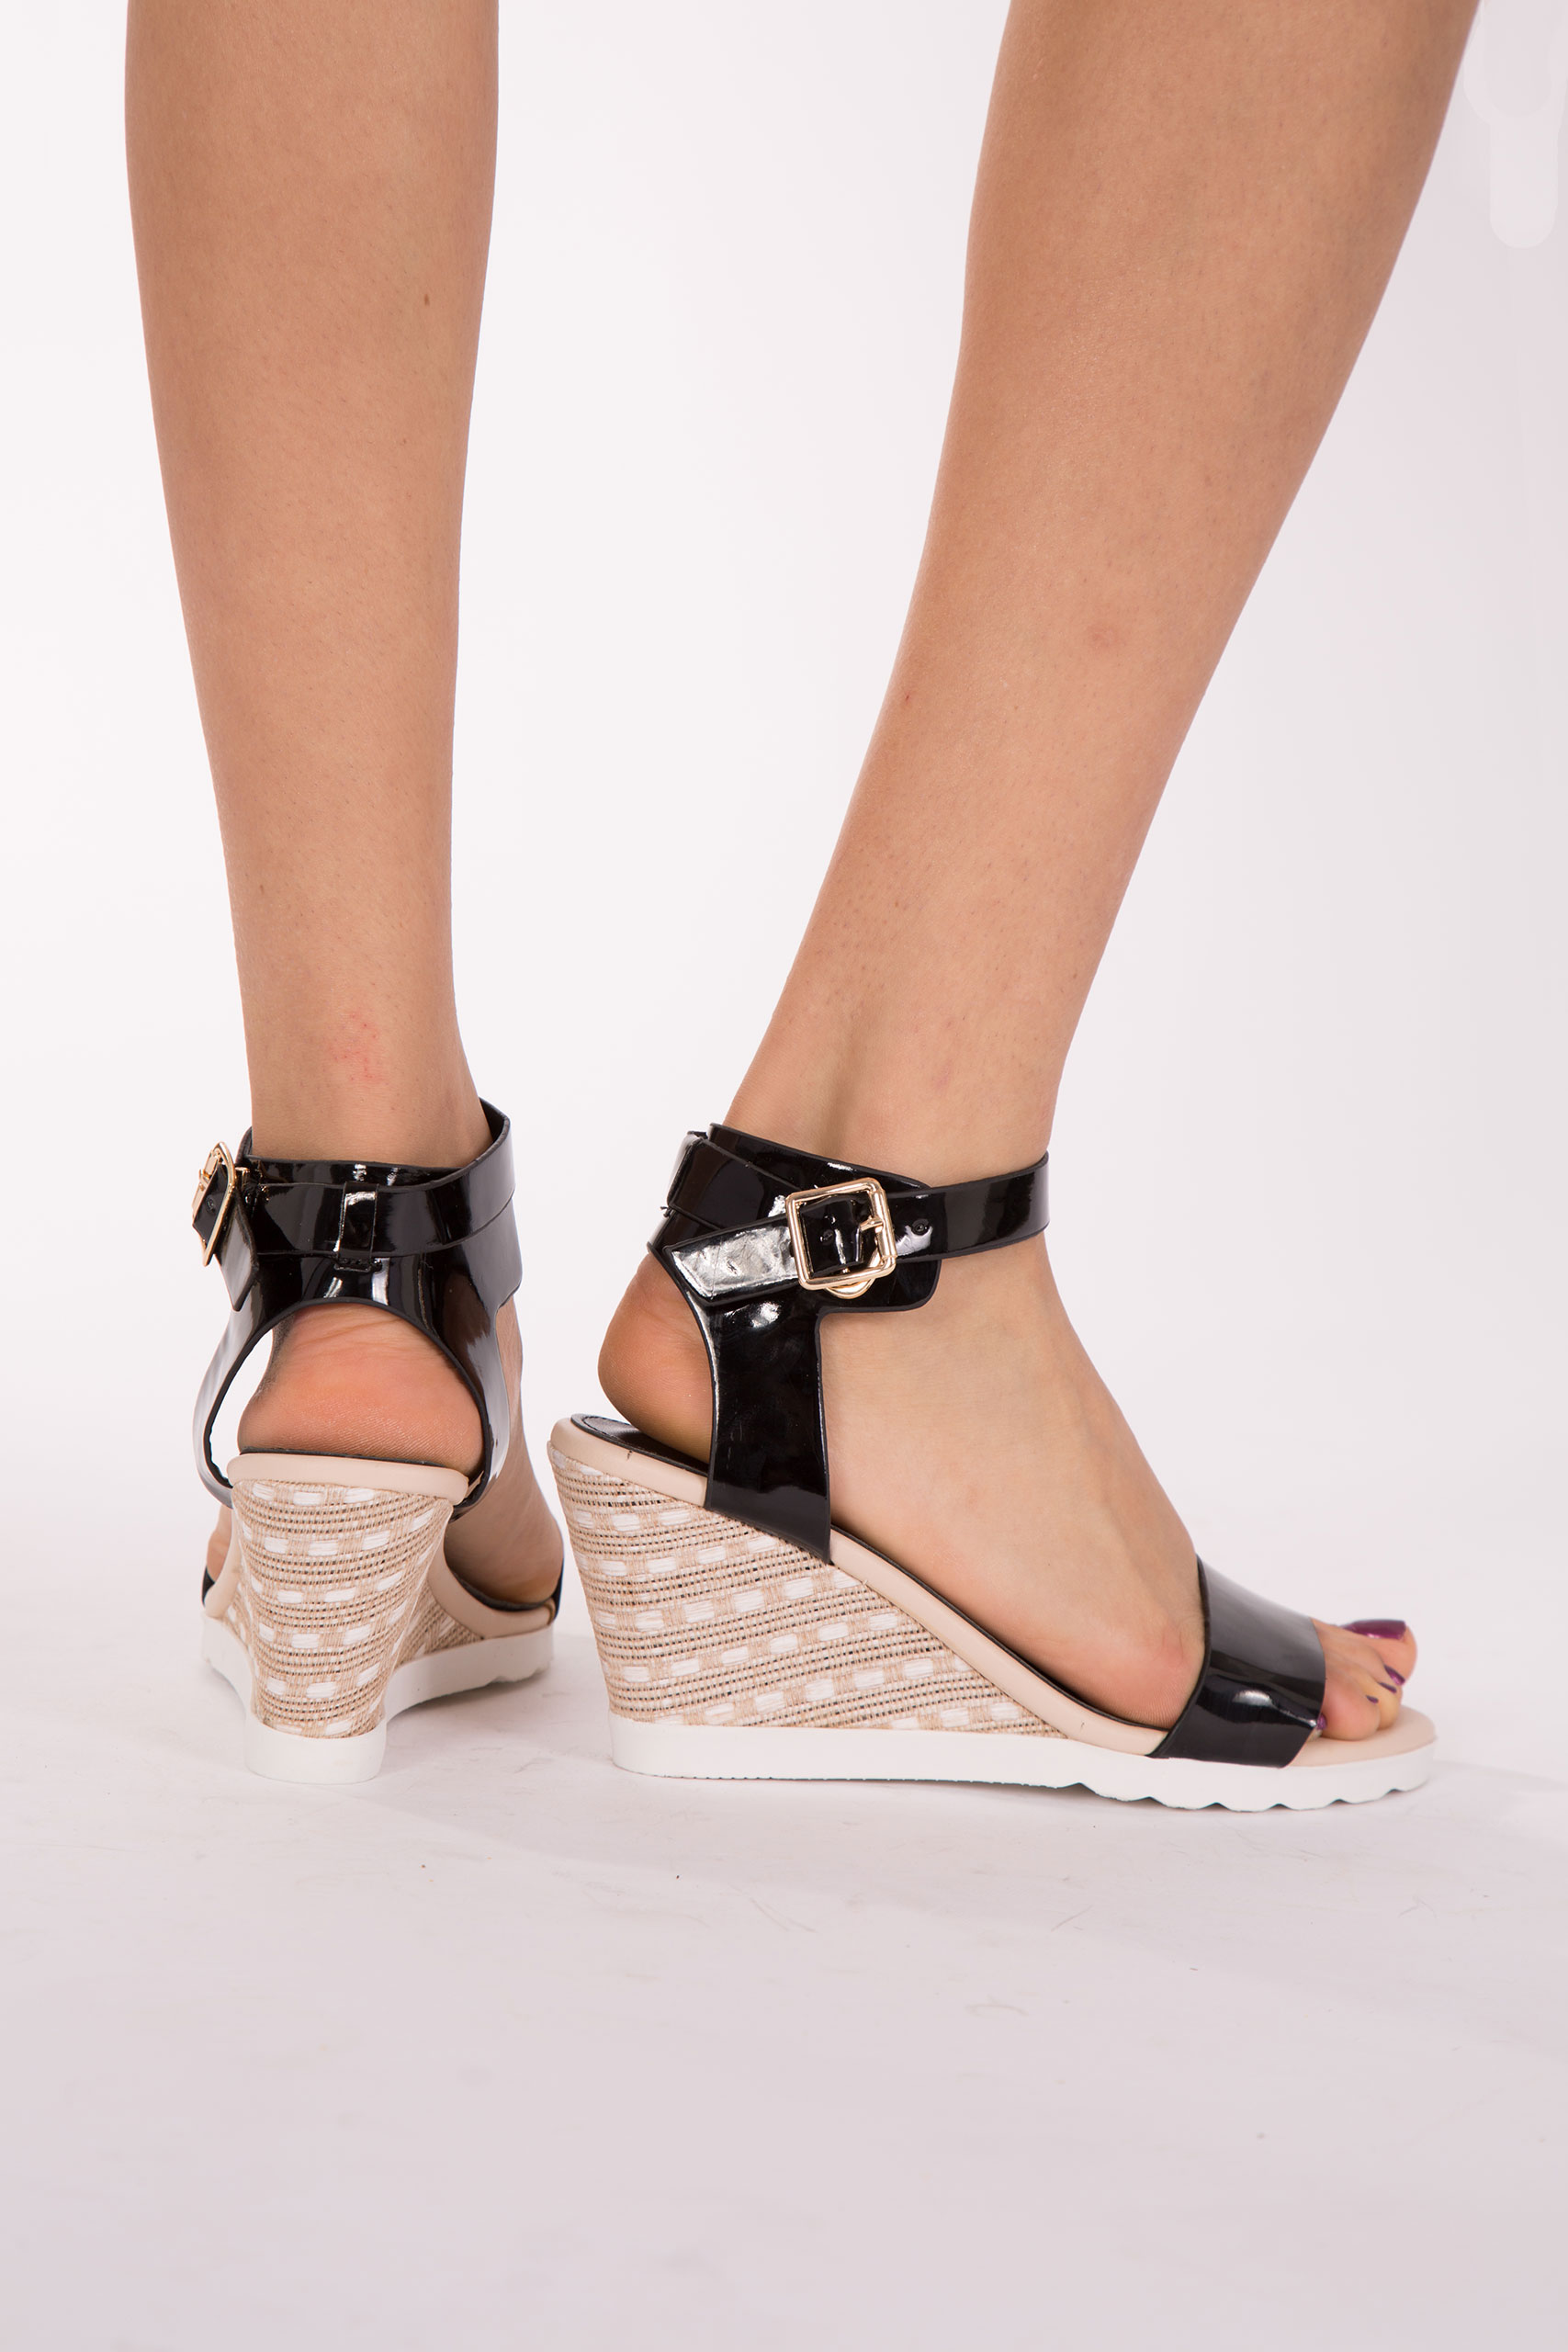 Find great deals on eBay for short wedge heels. Shop with confidence.